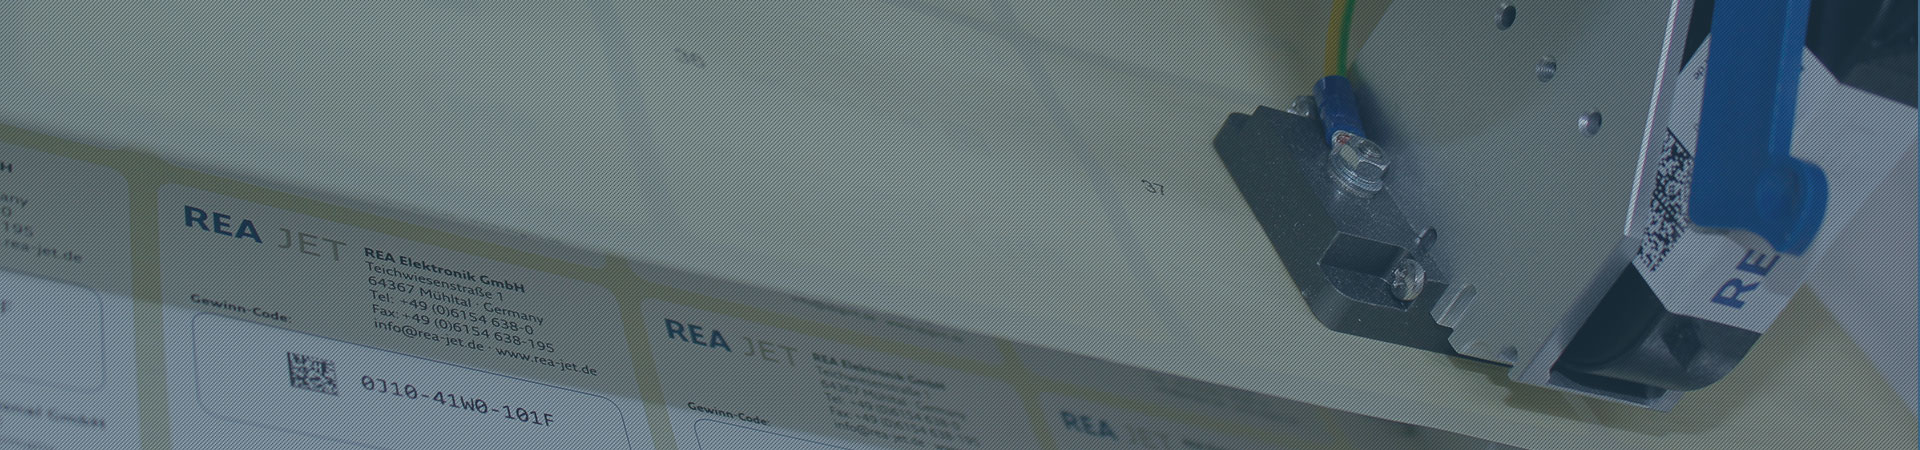 Coding and marking solutions for your applications - REA JET